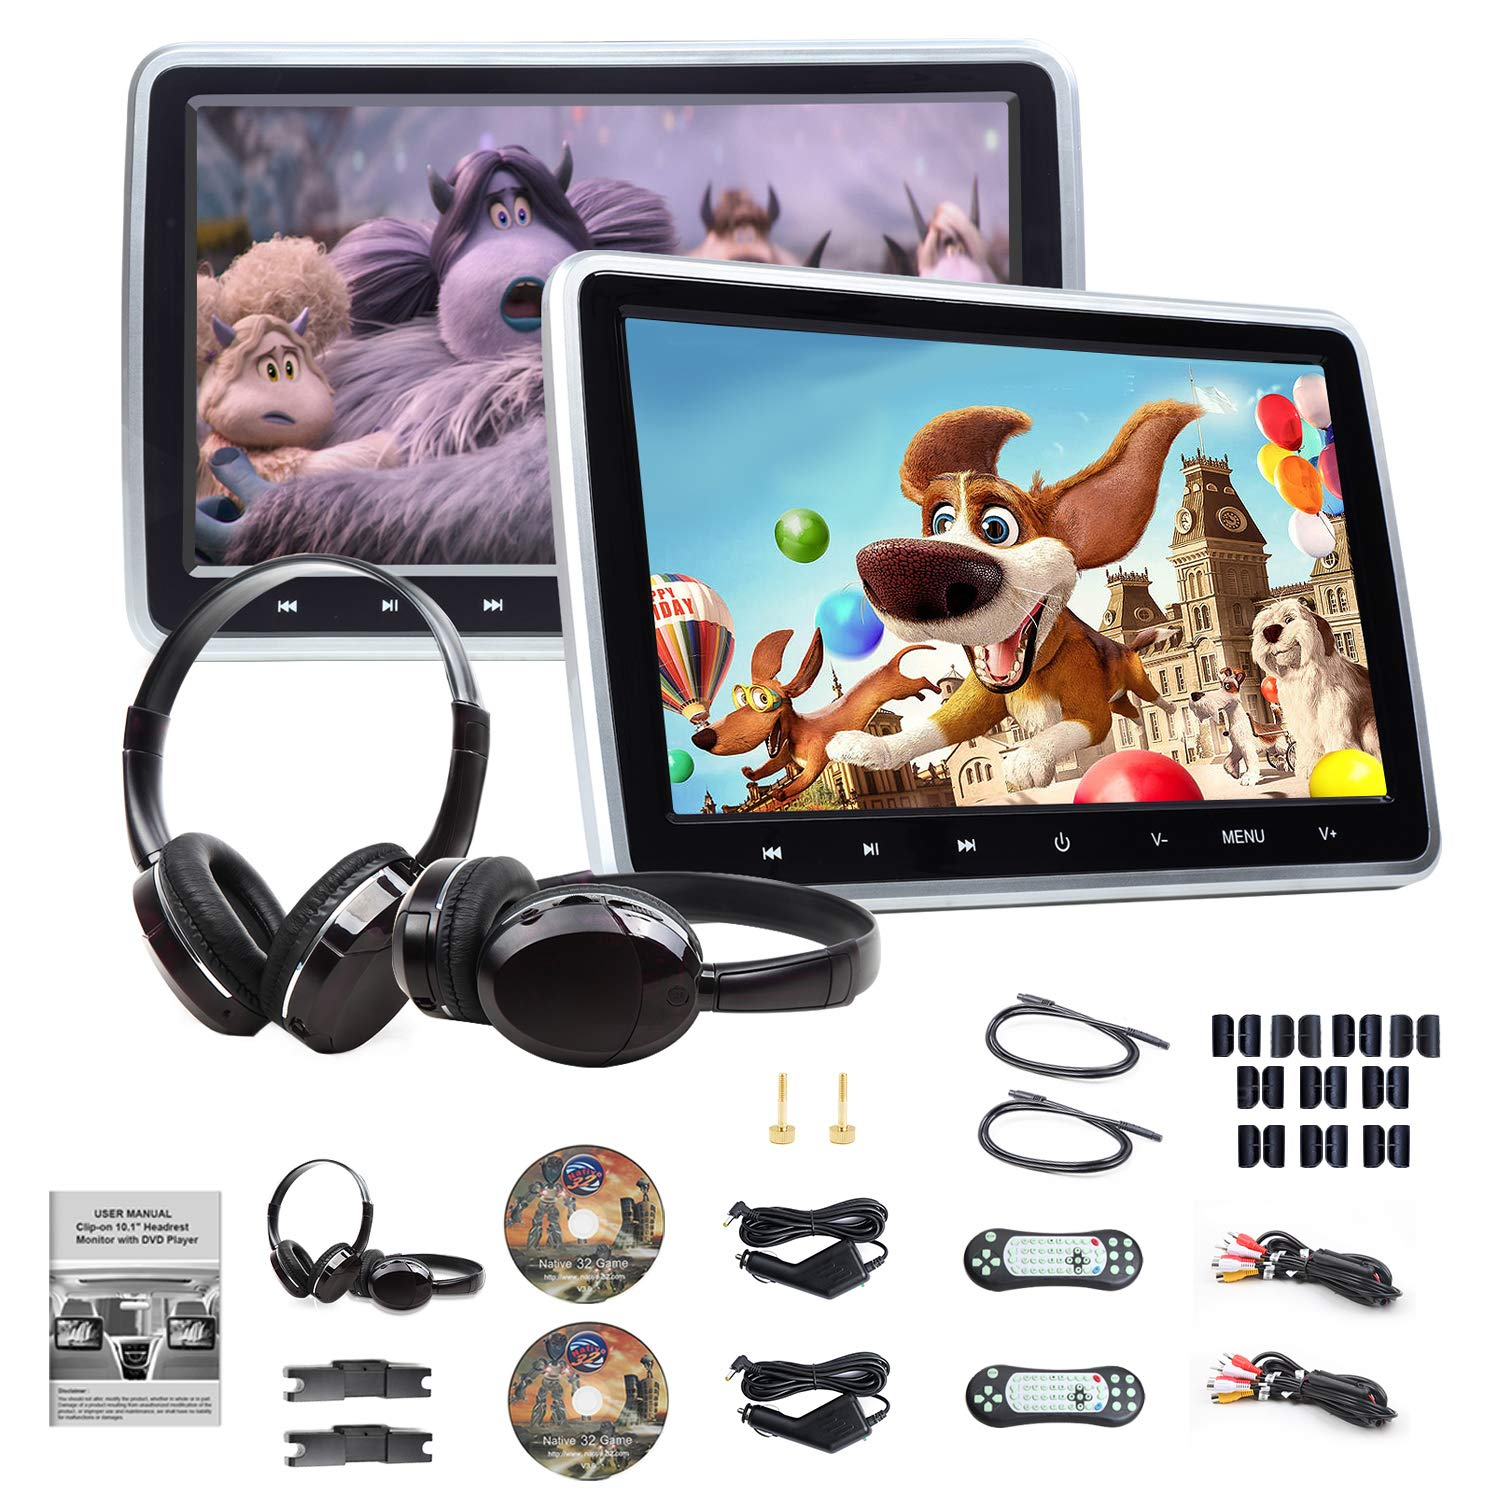 Eonon 2019 10.1 Inch Headrest Monitors, Dual Screen DVD Player Portable DVD Player for Kids Touch Screen Headrest DVD Player Digital Touch Button HDMI-C1100A by Eonon